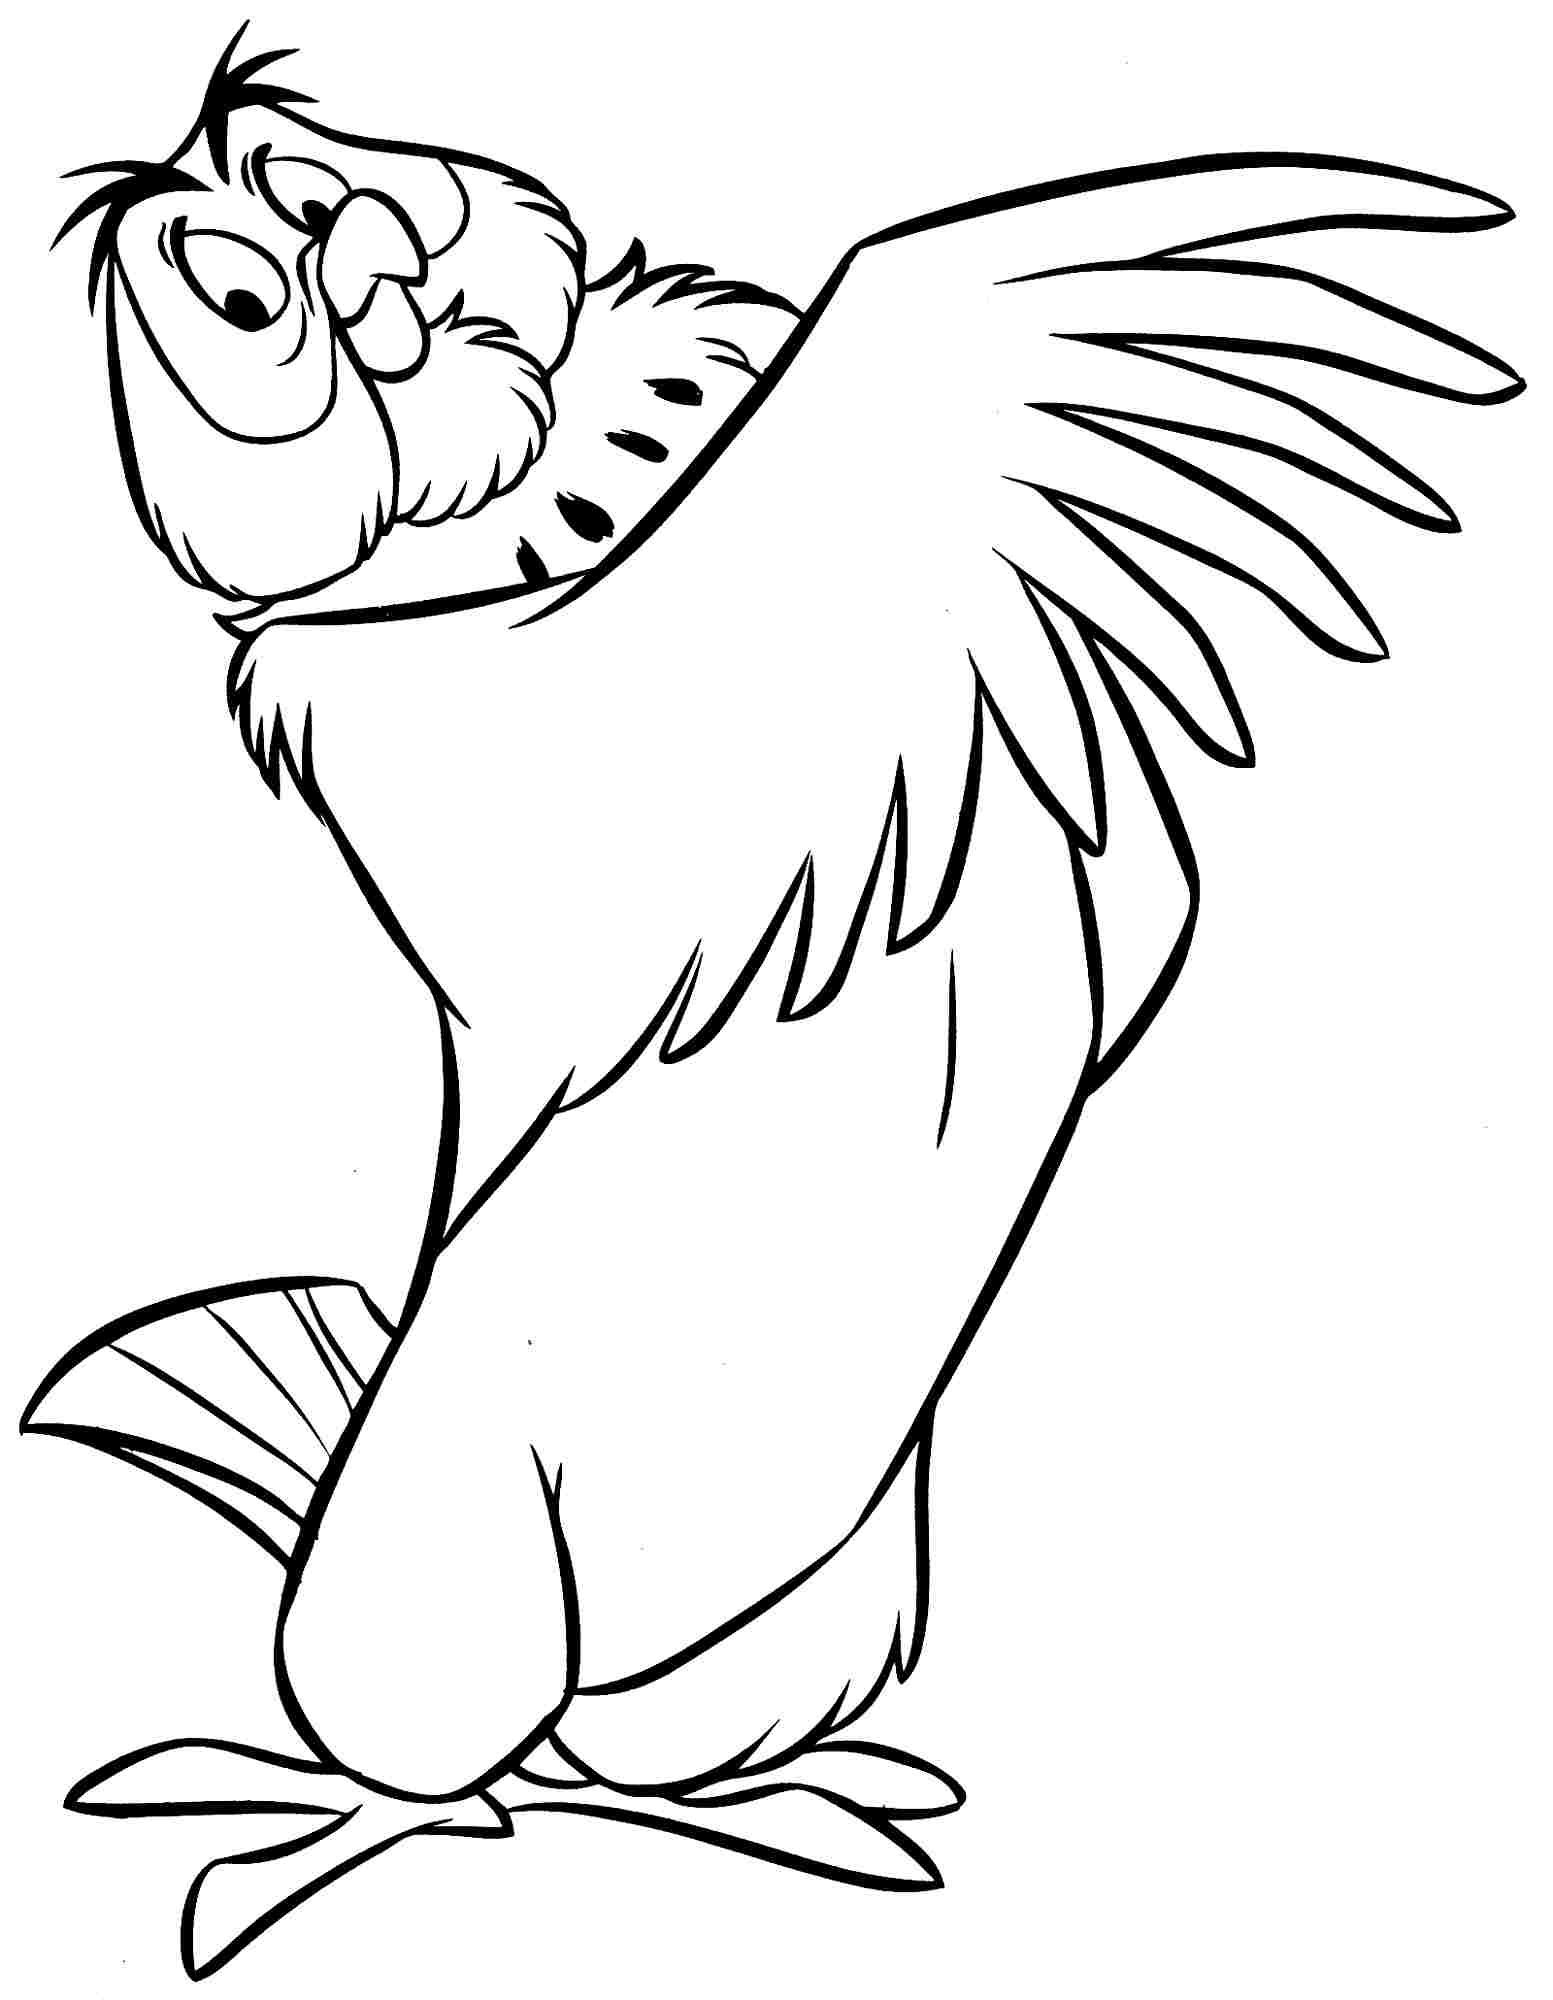 Winnie The Pooh Rabbit Coloring Pages Owl Outline Winnie The Pooh